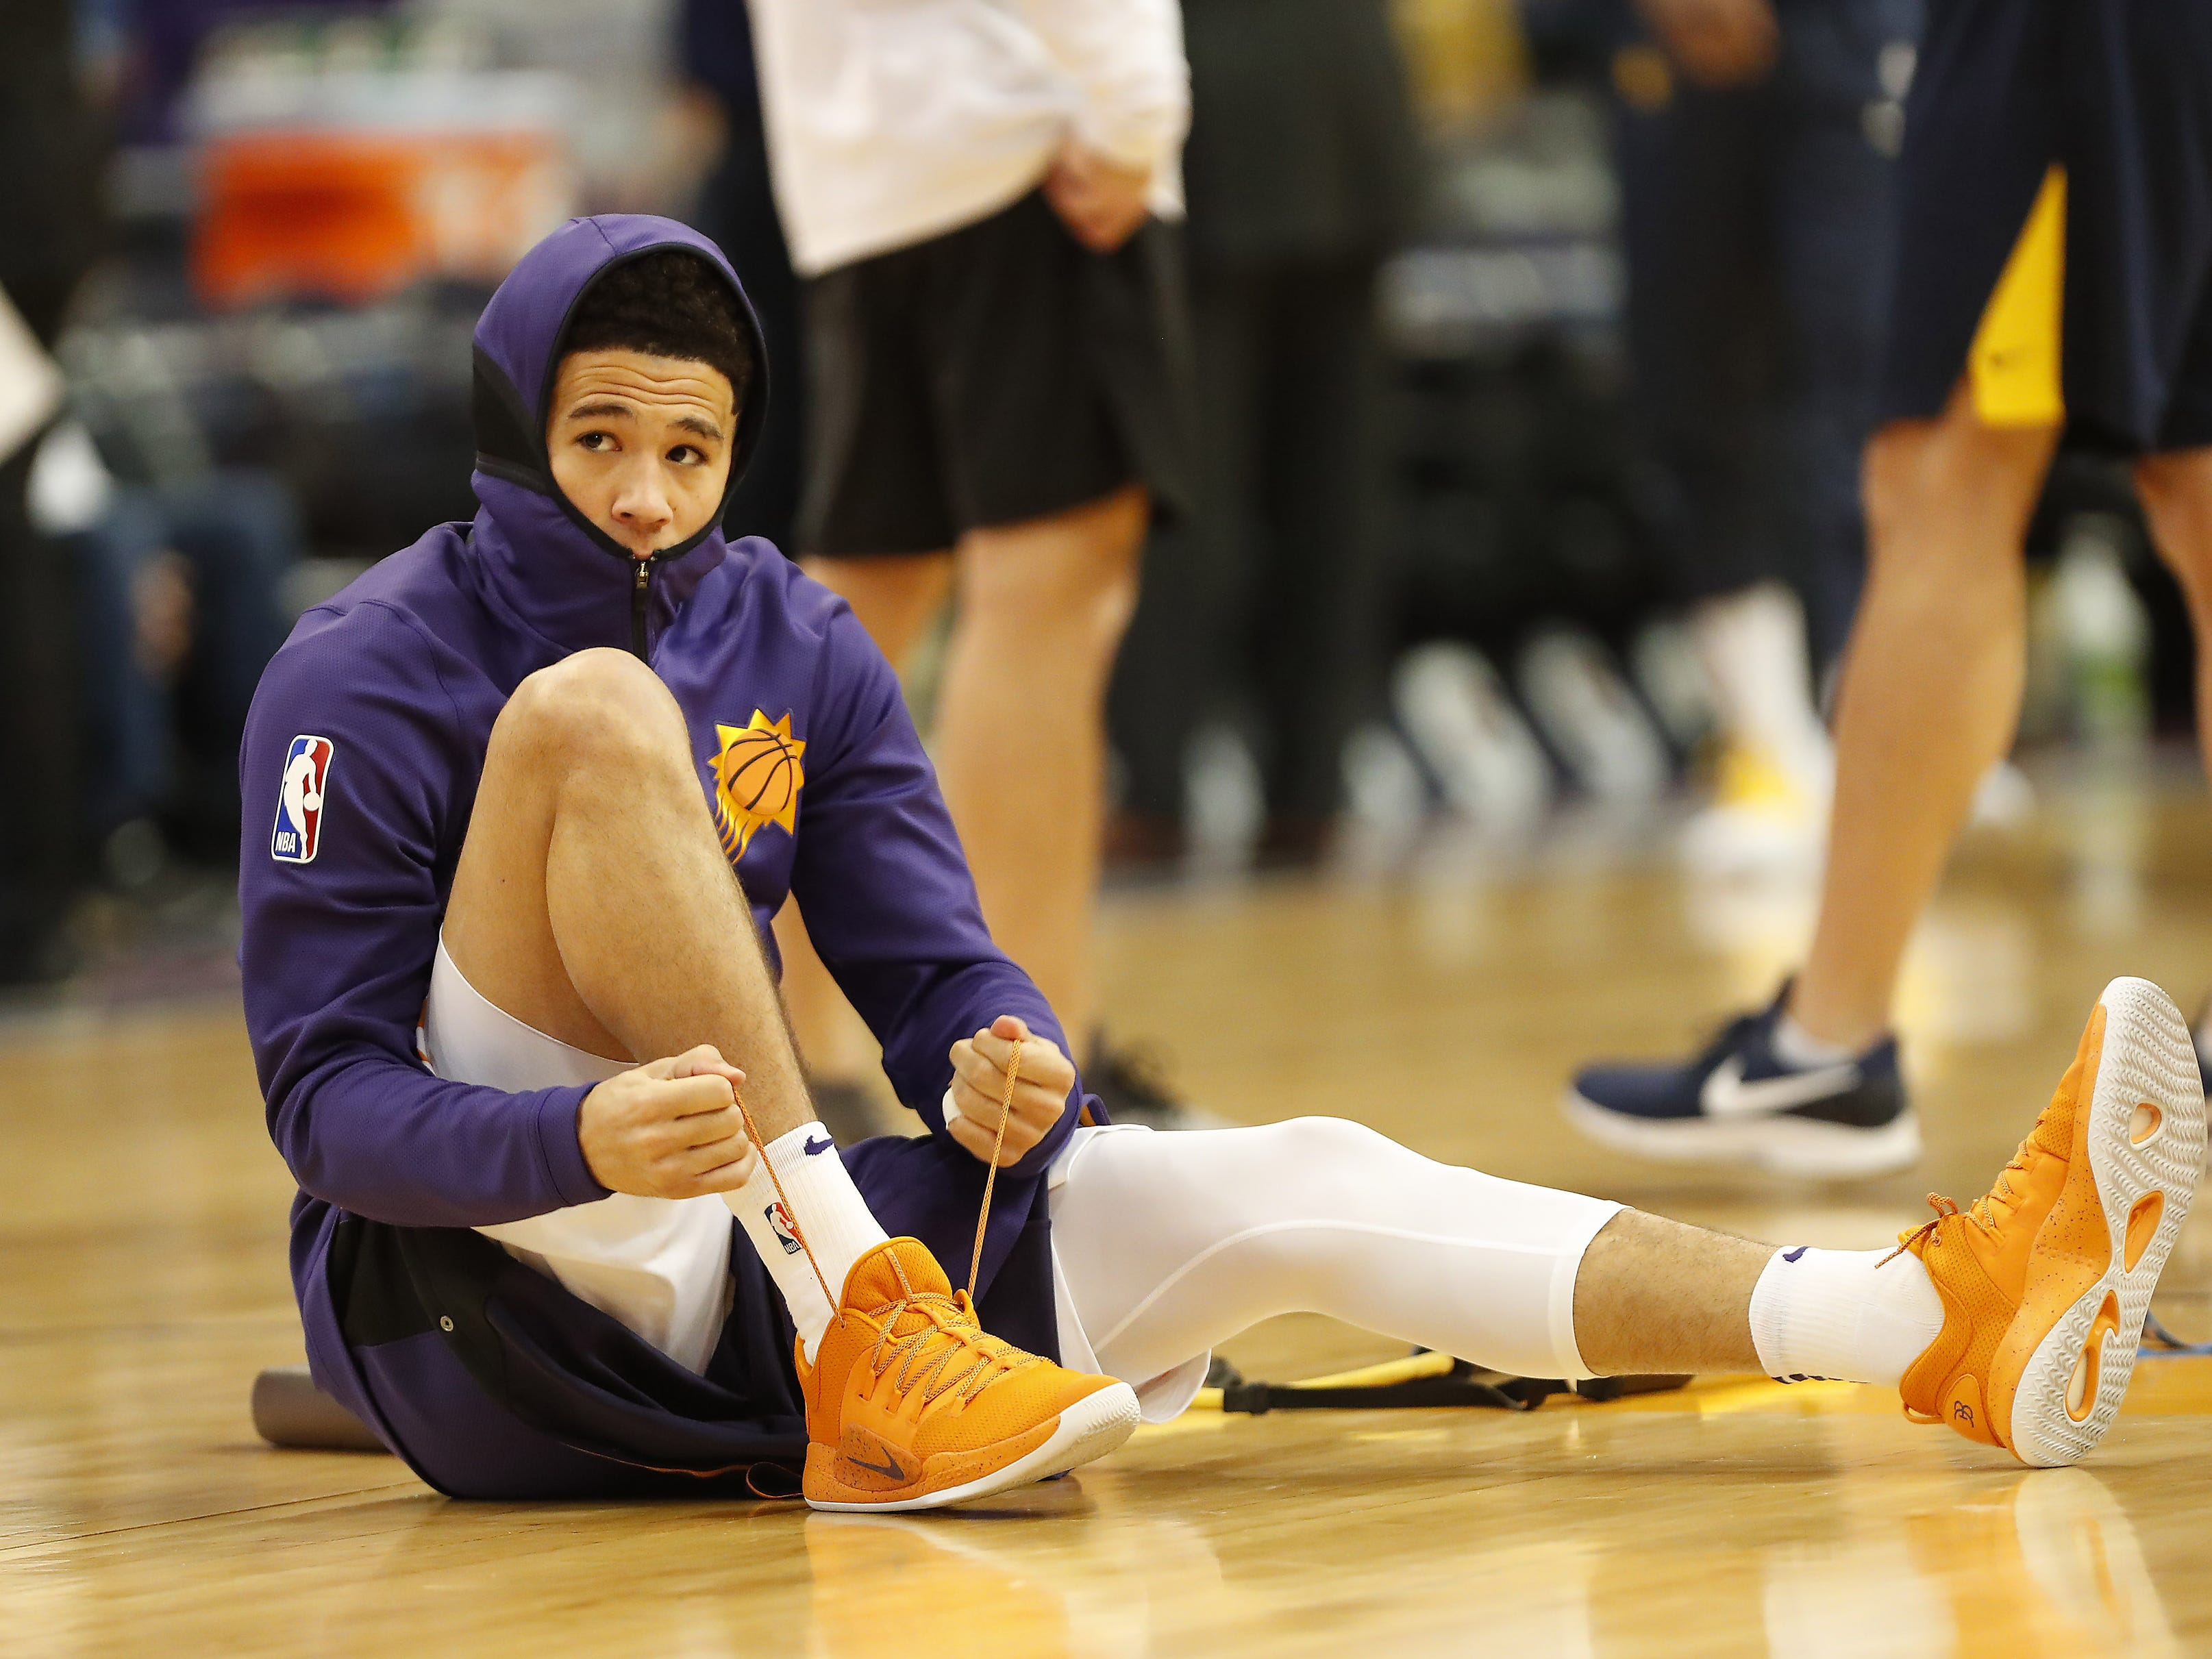 Phoenix Suns guard Devin Booker (1) laces up his shoes before playing against the Indiana Pacers November 27.